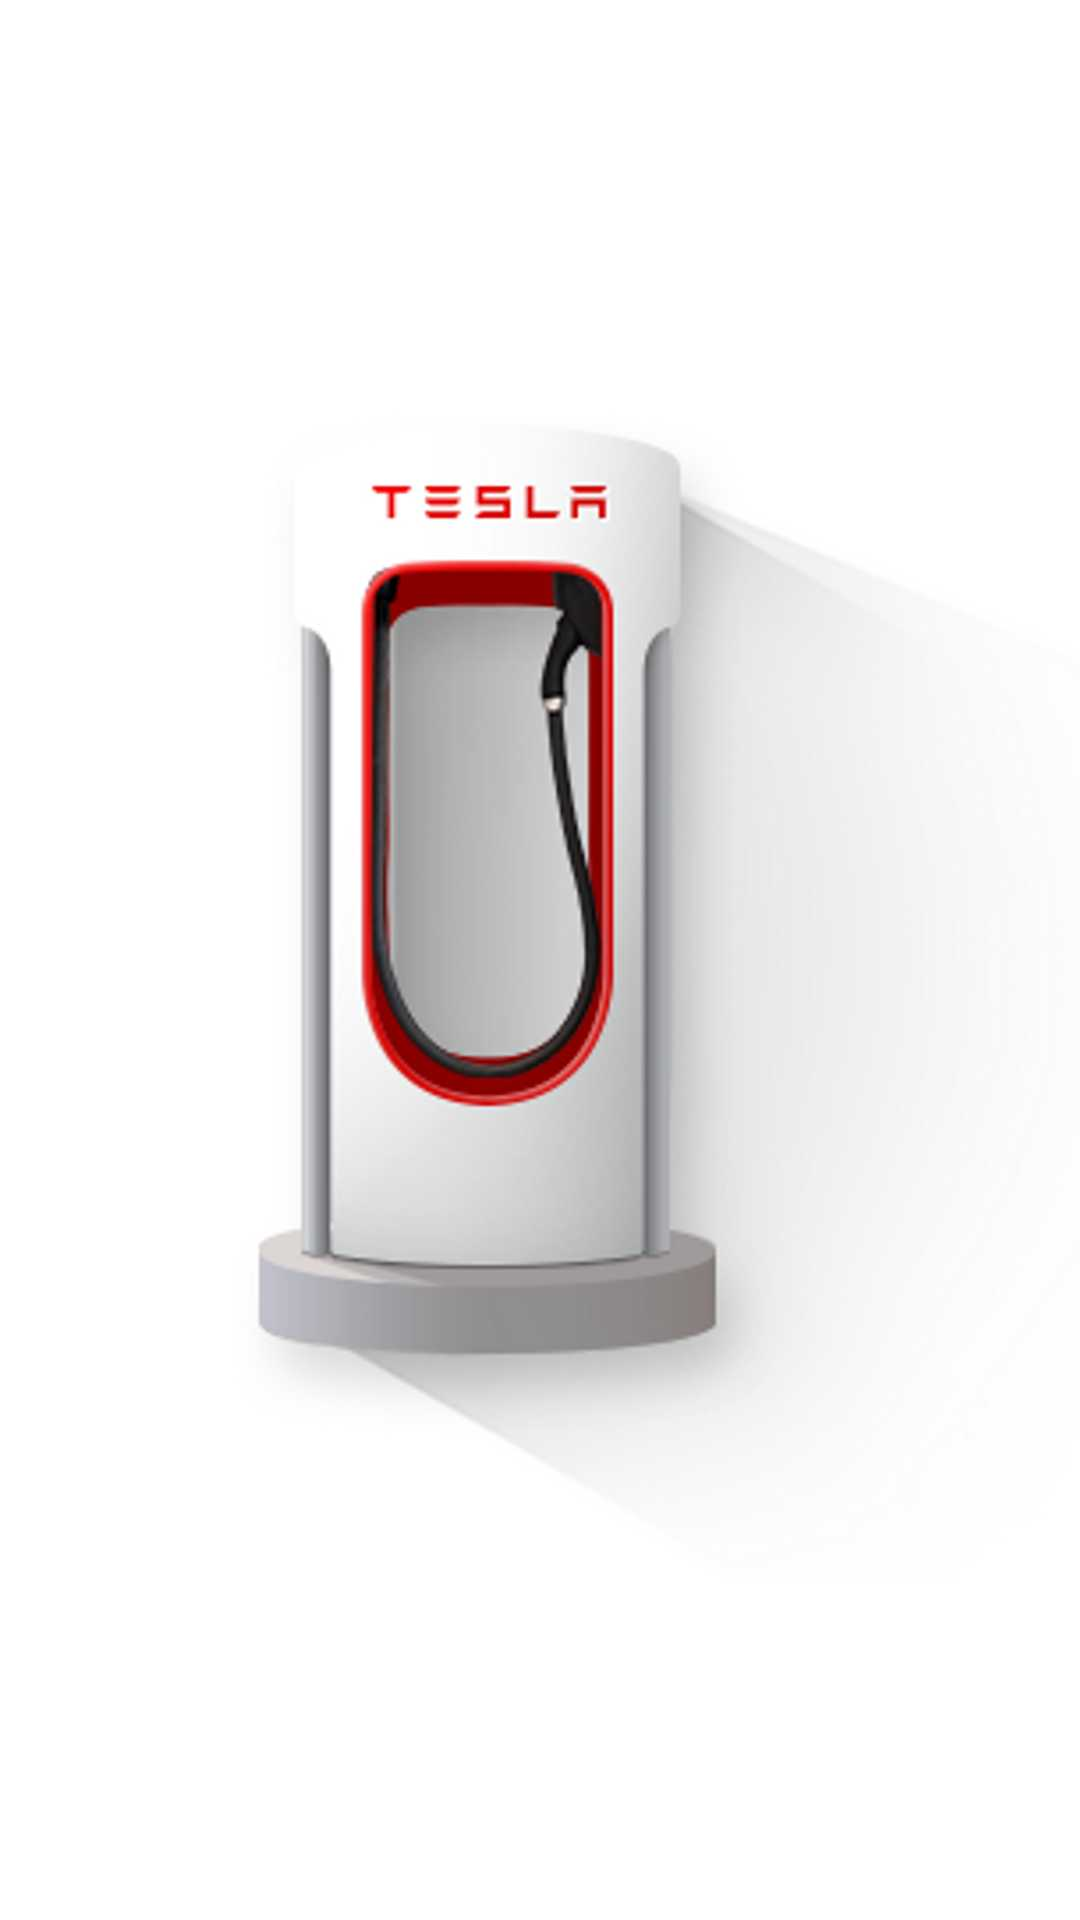 Tesla Adds Supercharger Payment Section By kWh For Model 3